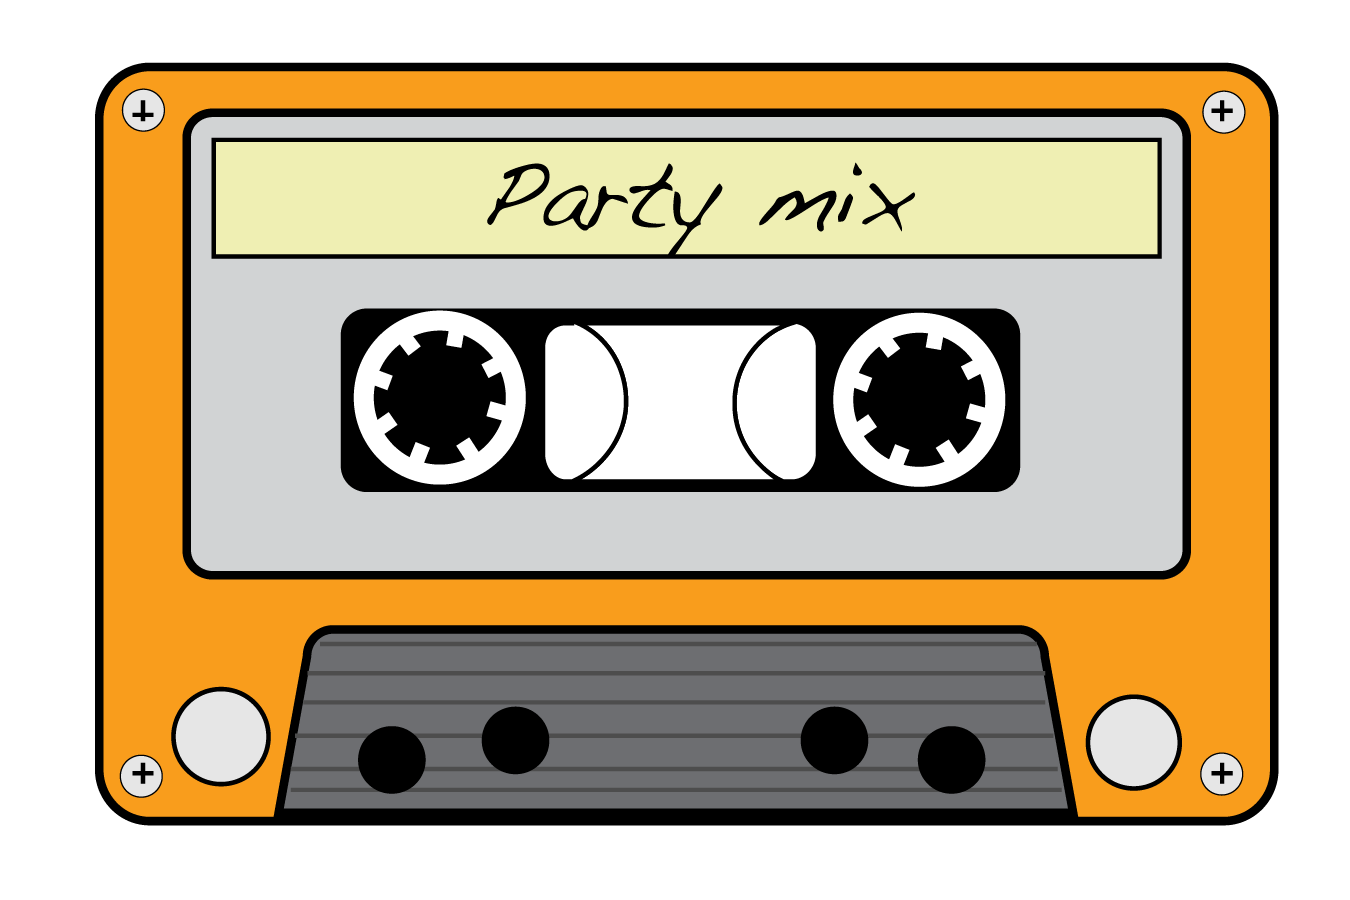 Audio tape clipart clipart freeuse library Free Music Tape Cliparts, Download Free Clip Art, Free Clip Art on ... clipart freeuse library